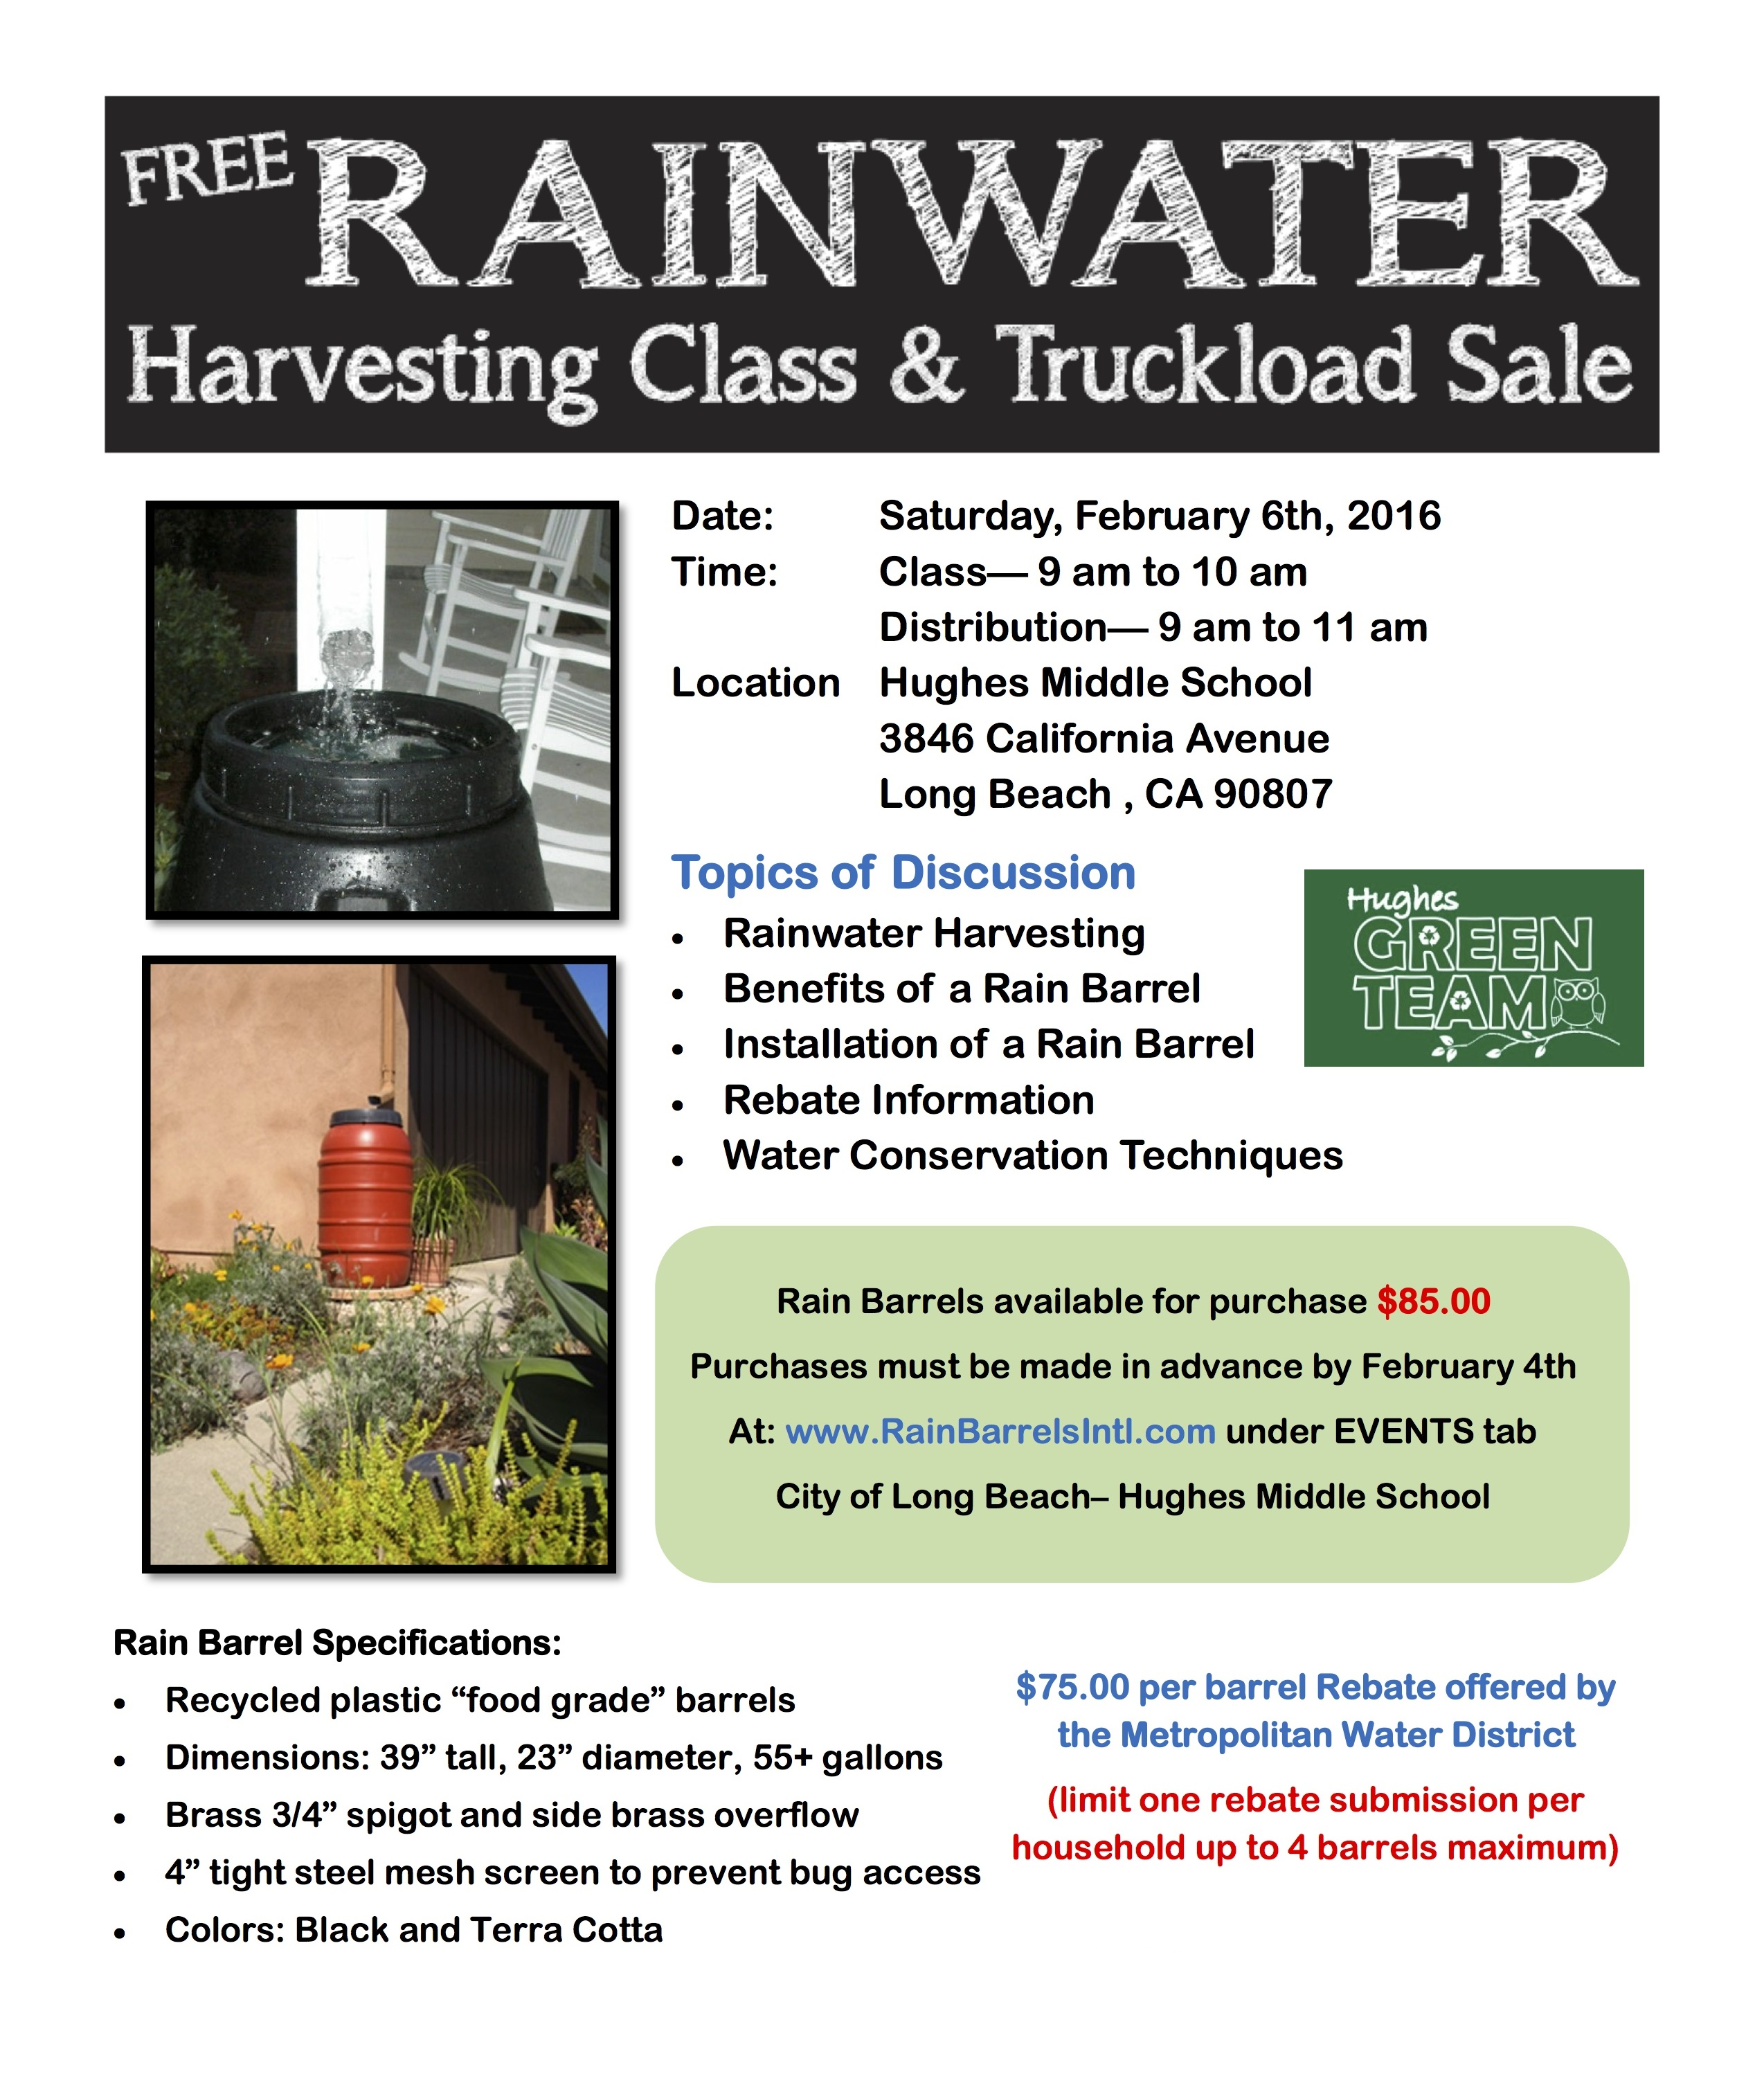 Rainwater harvesting class and truckload sale free rainwater harvesting class truckload sale aiddatafo Images